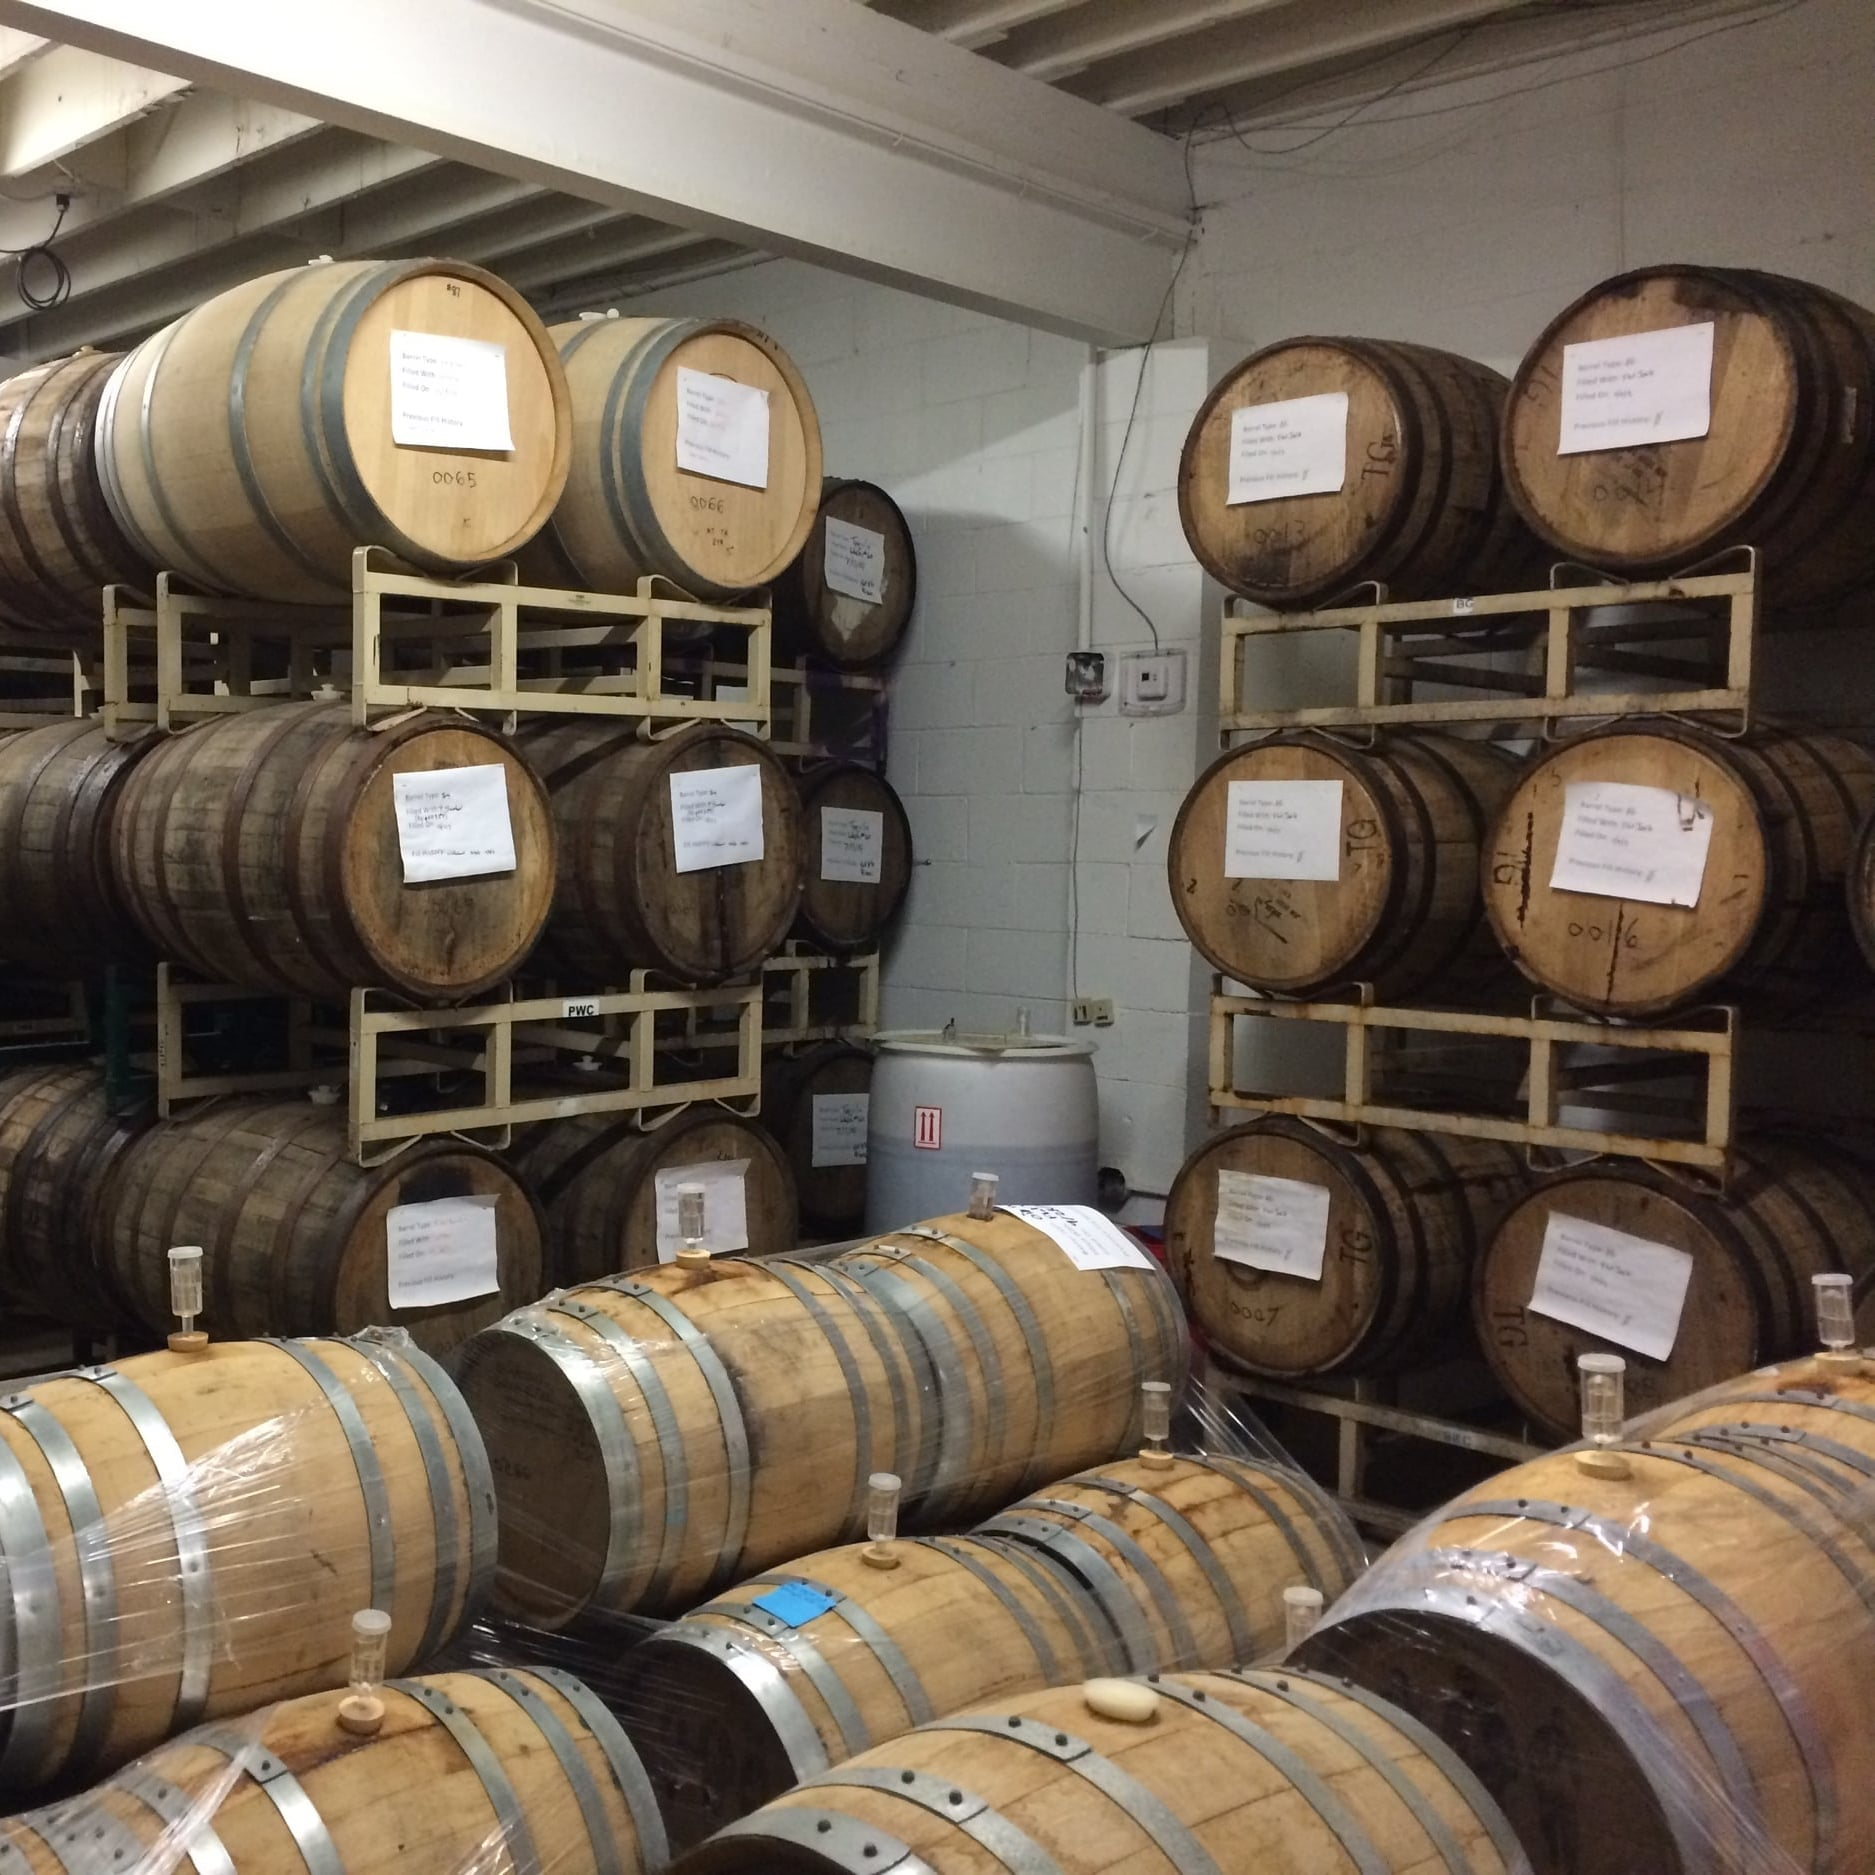 Flat12's cellar houses a variety of barrels like bourbon,  tequila, rum, wine, and port barrels.